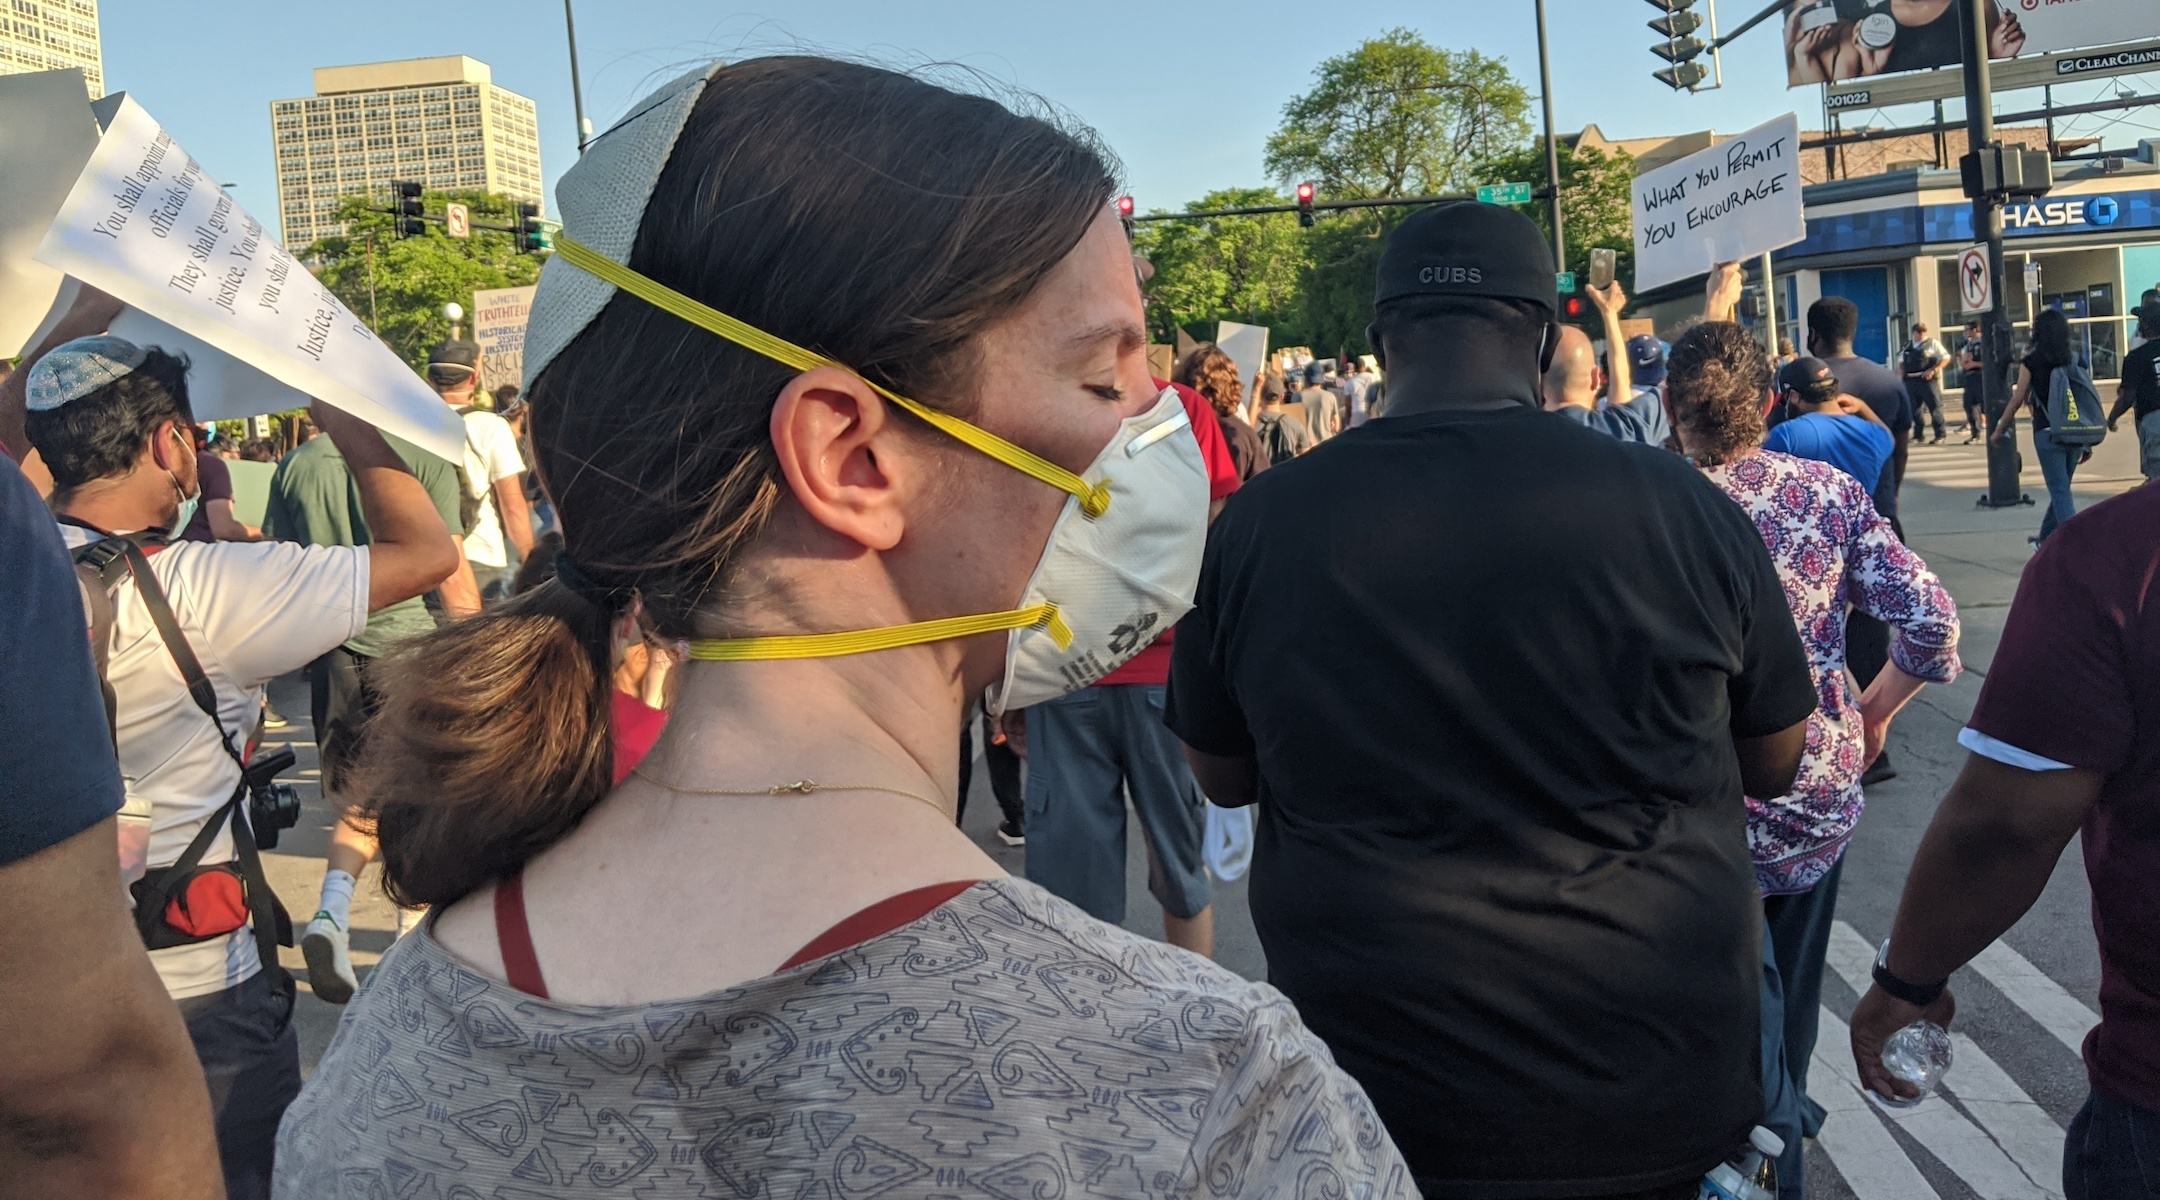 Rabbi Lauren Henderson attends the interfaith demonstration to protest the death of George Floyd in Chicago on June 2, 2020. (Courtesy of Henderson)